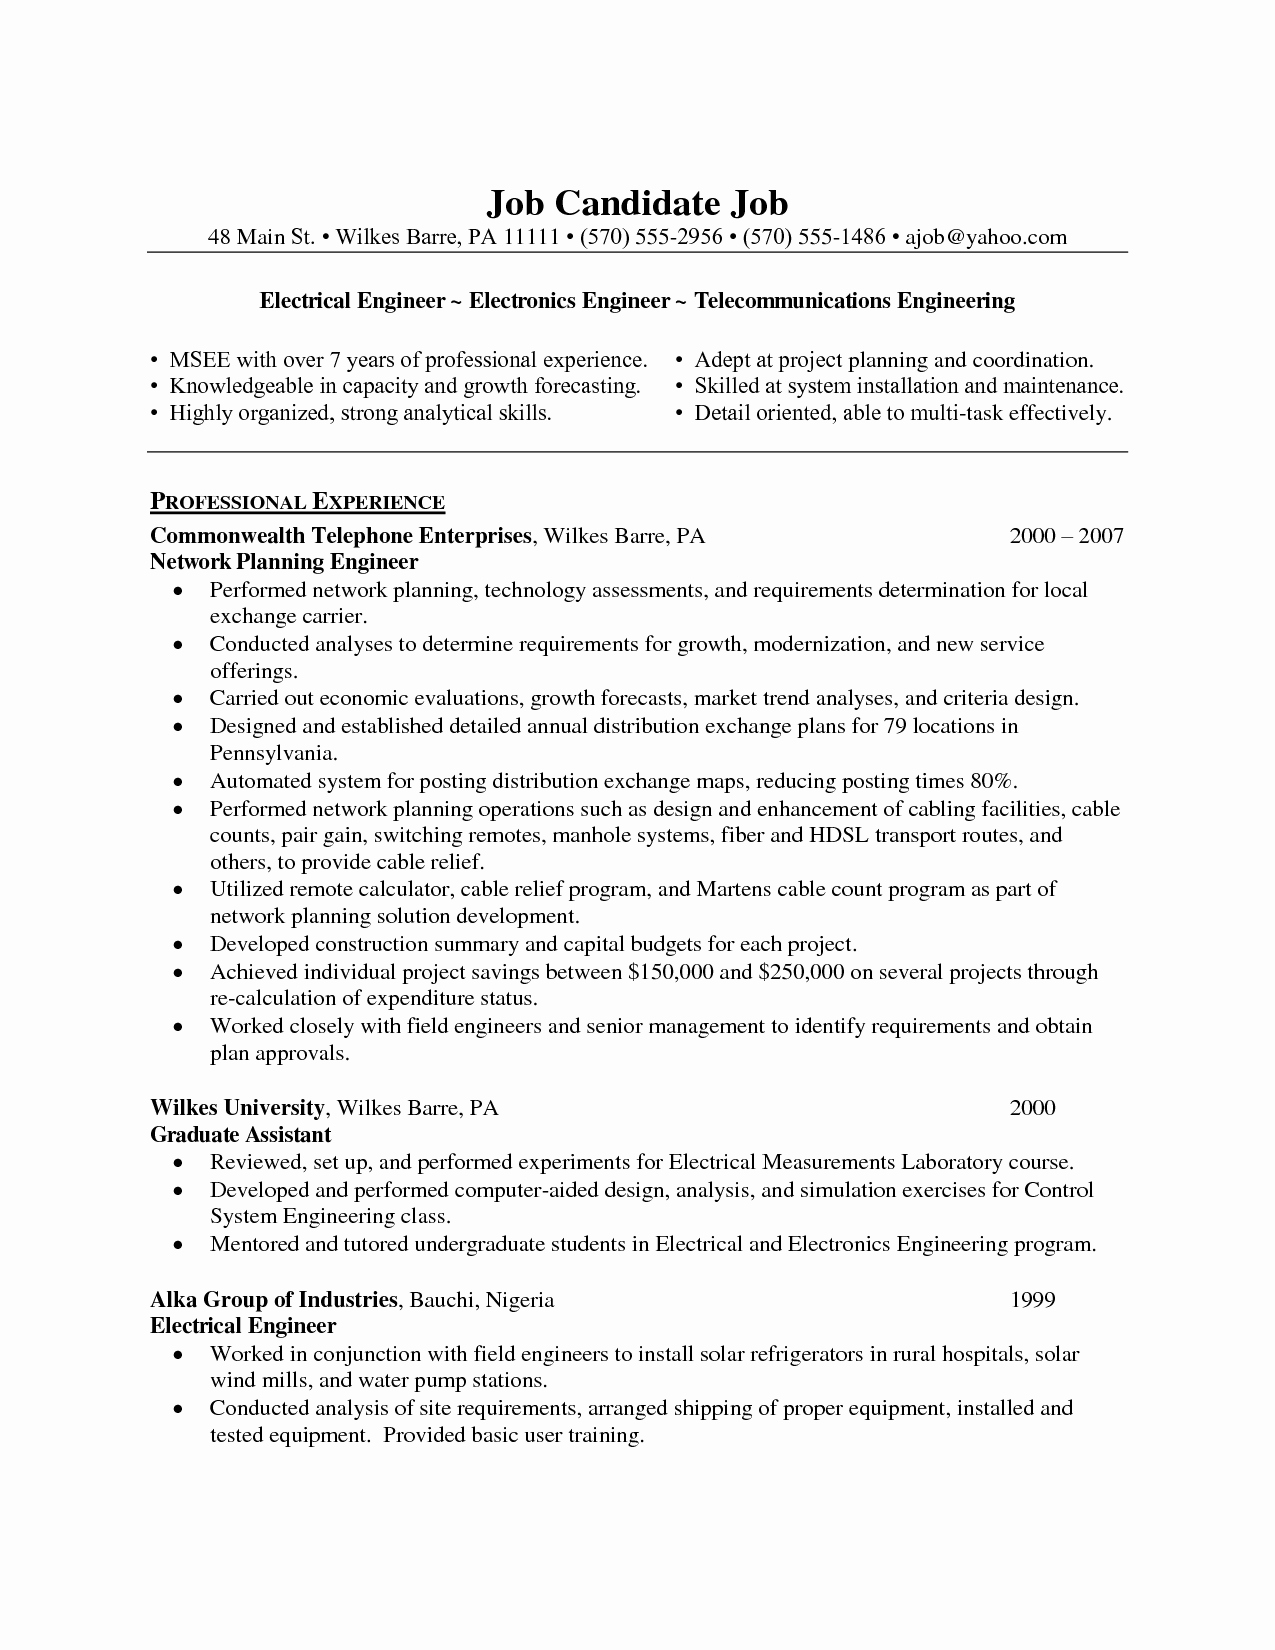 Electronics Technician Resume Sample Luxury Resume Sample for Electronics Engineer Resume Ideas